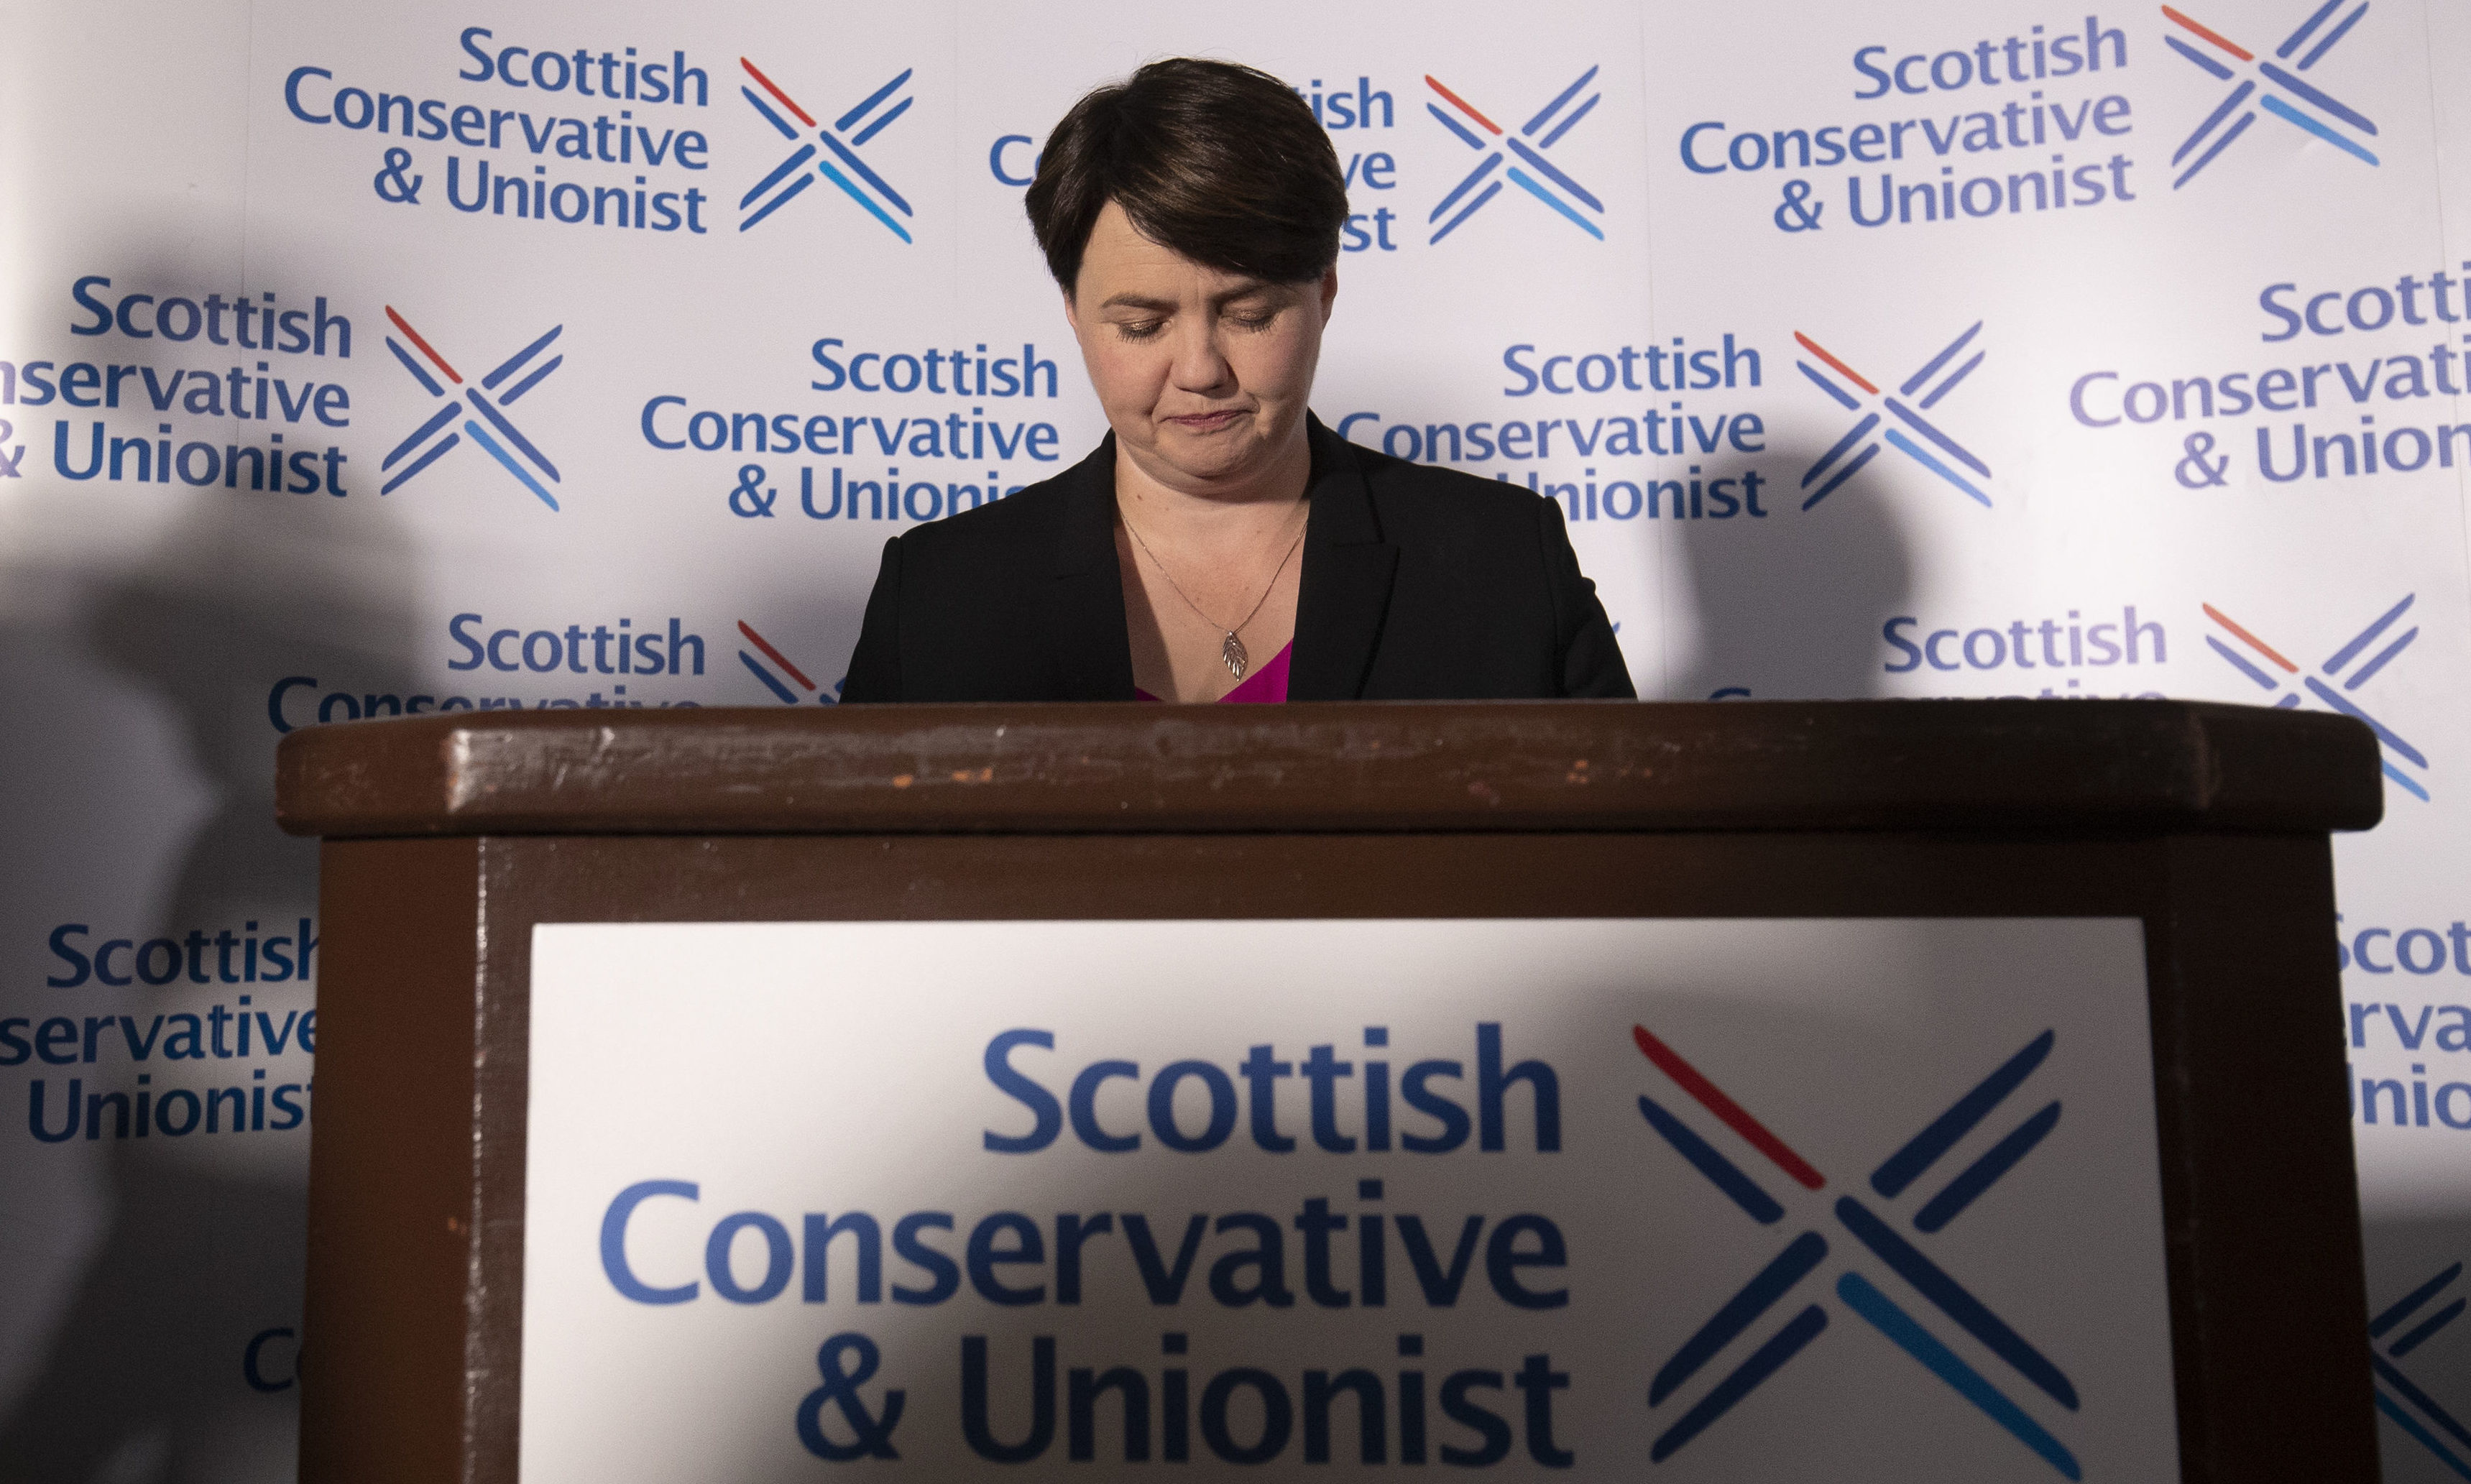 Ruth Davidson during a press conference following her announcement that she had resigned as leader of the Scottish Conservatives.